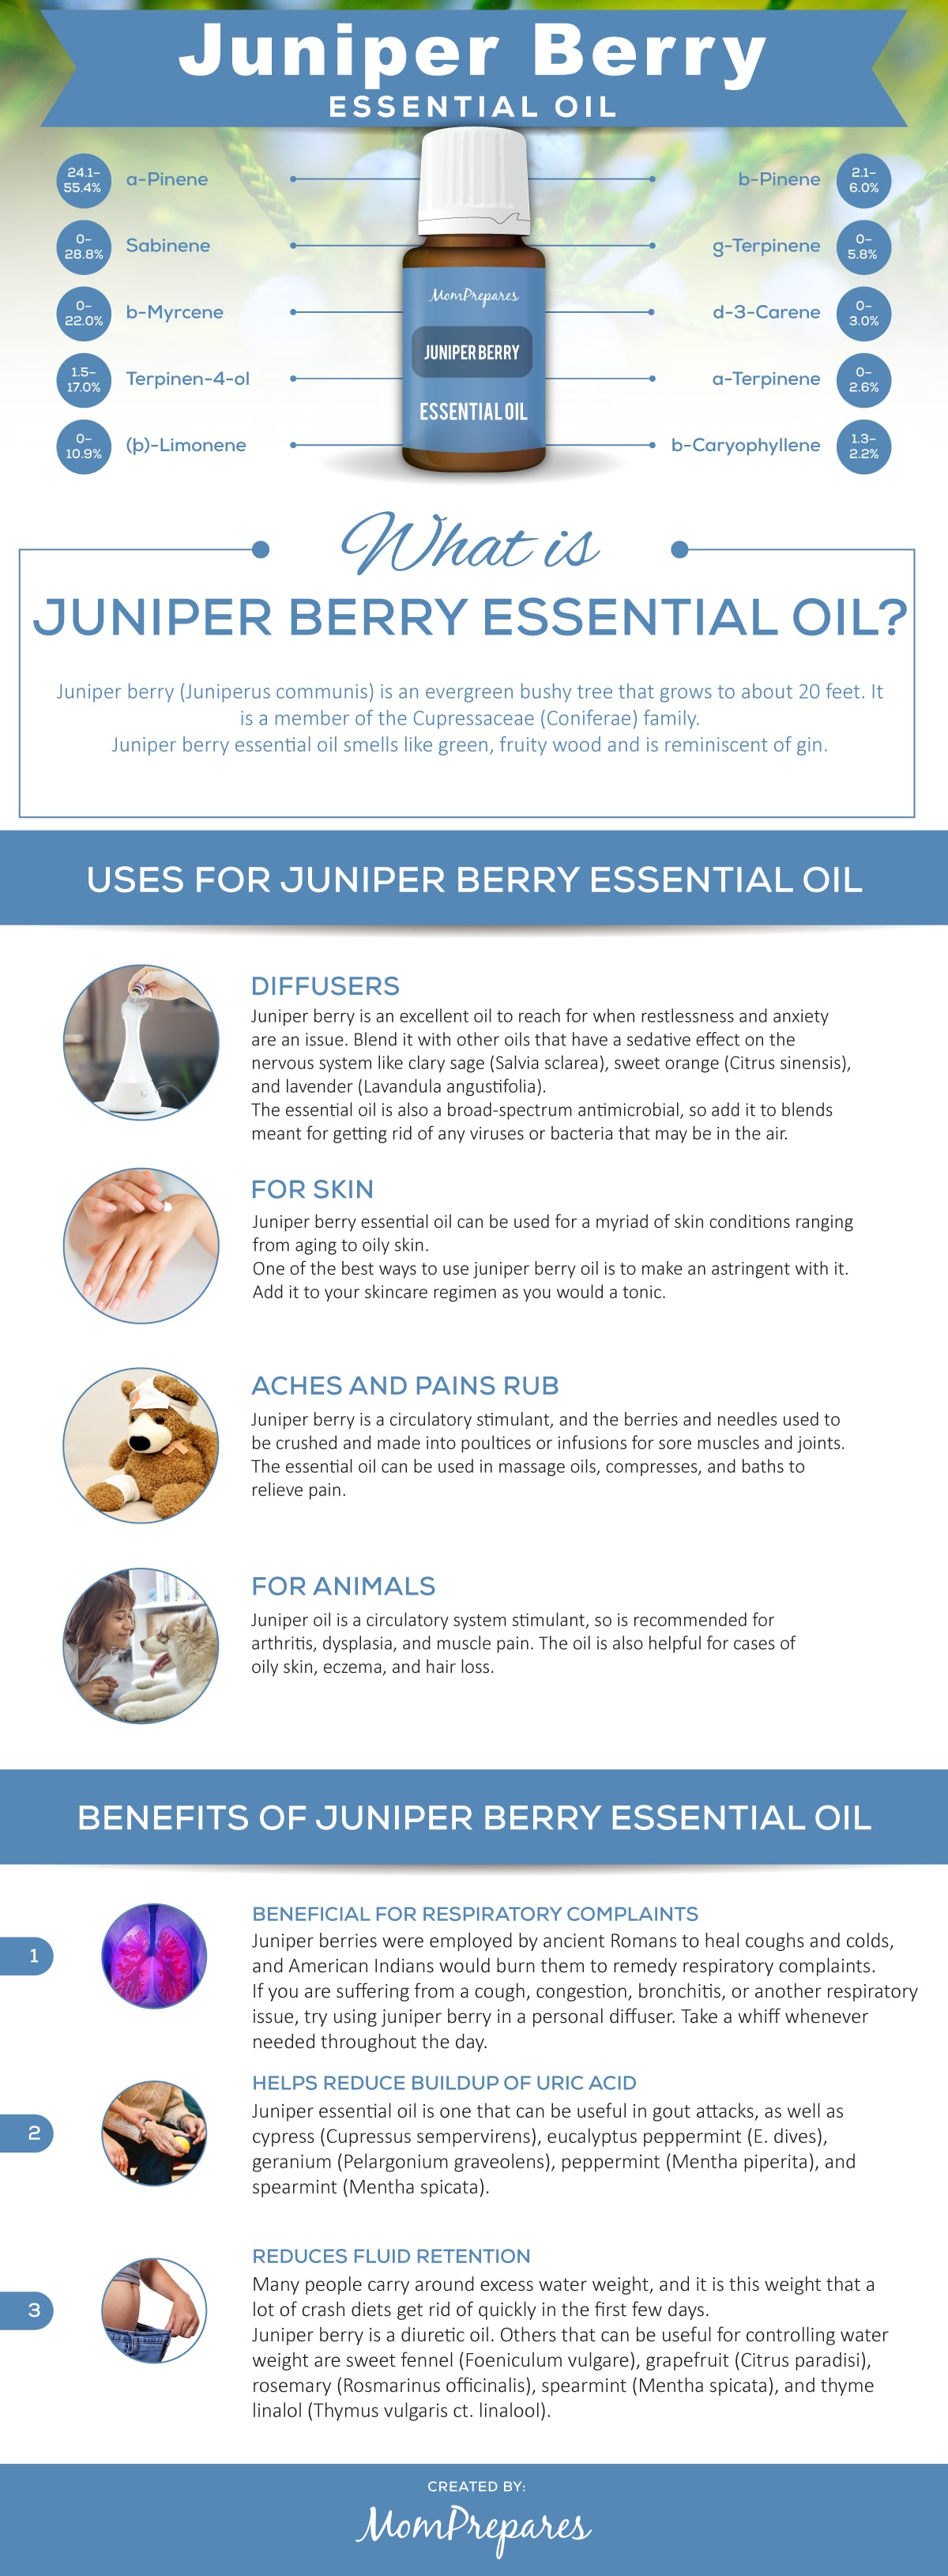 Juniper Berry infographic